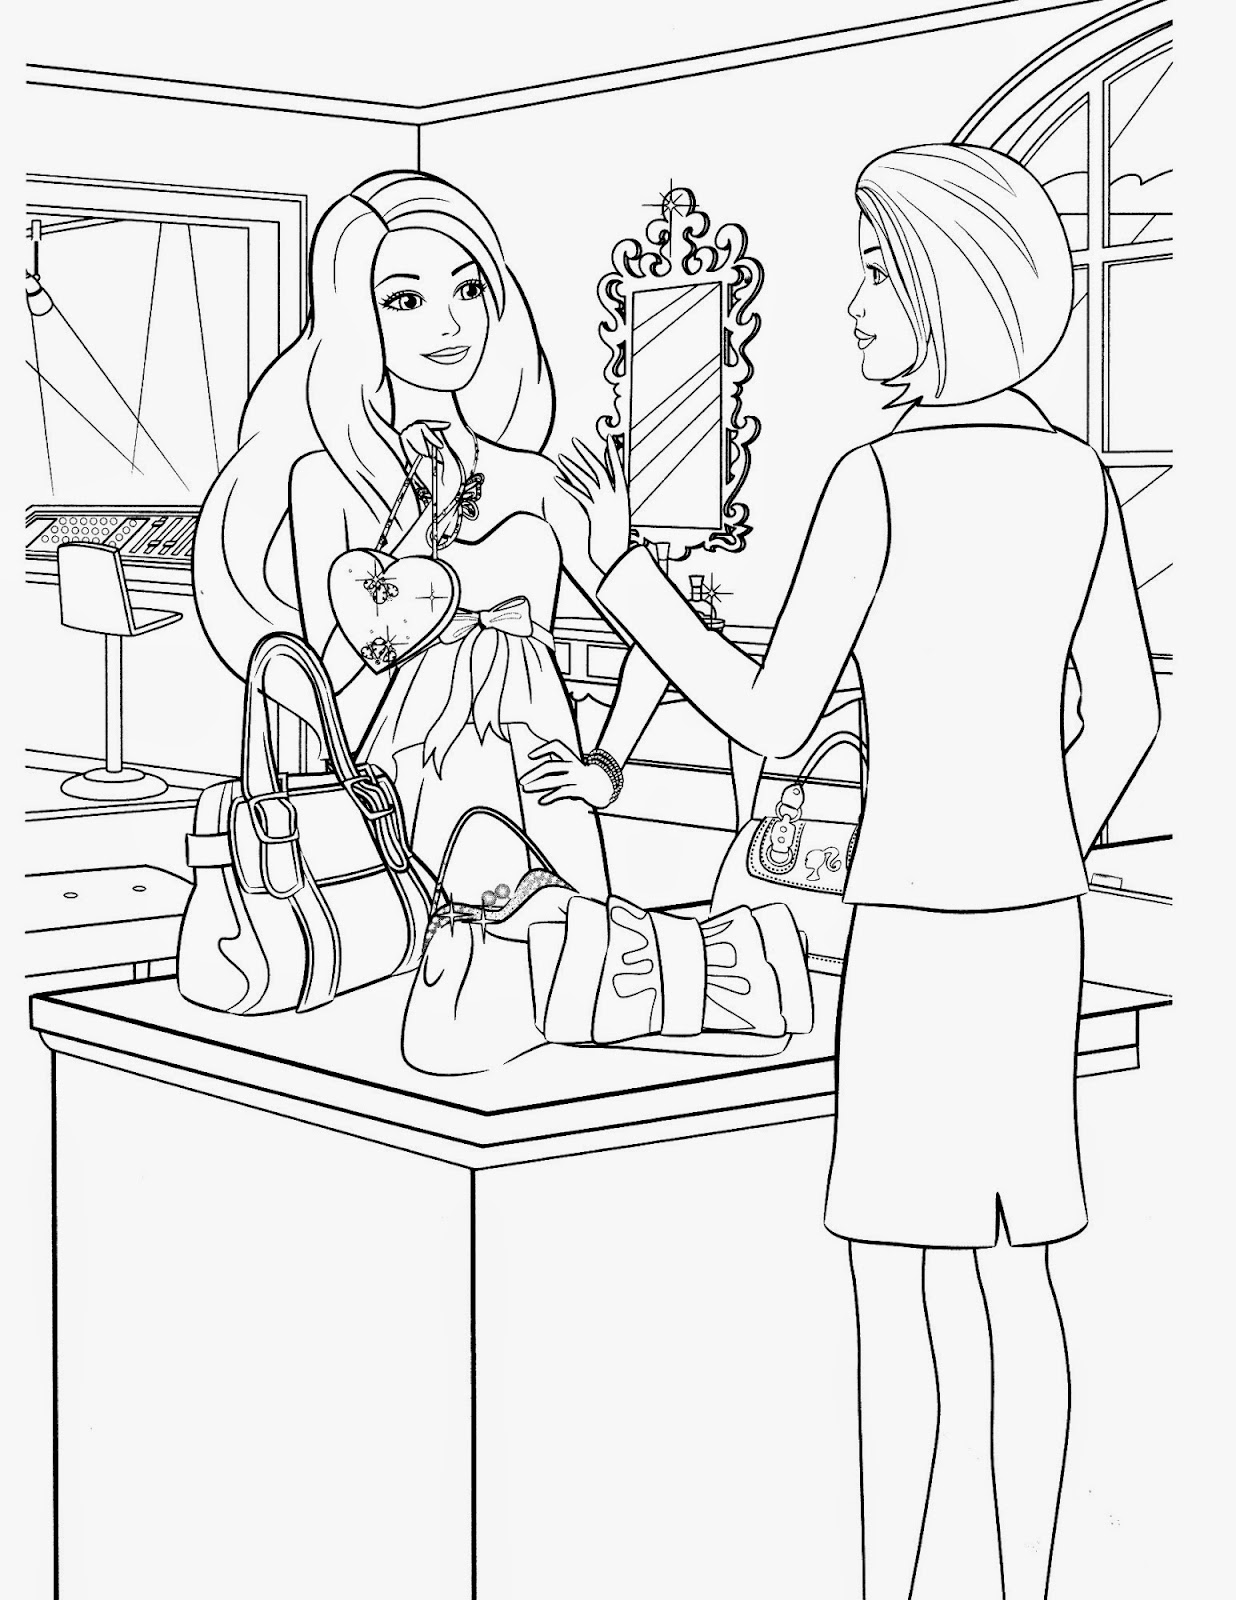 for Barbie in the dream house coloring pages